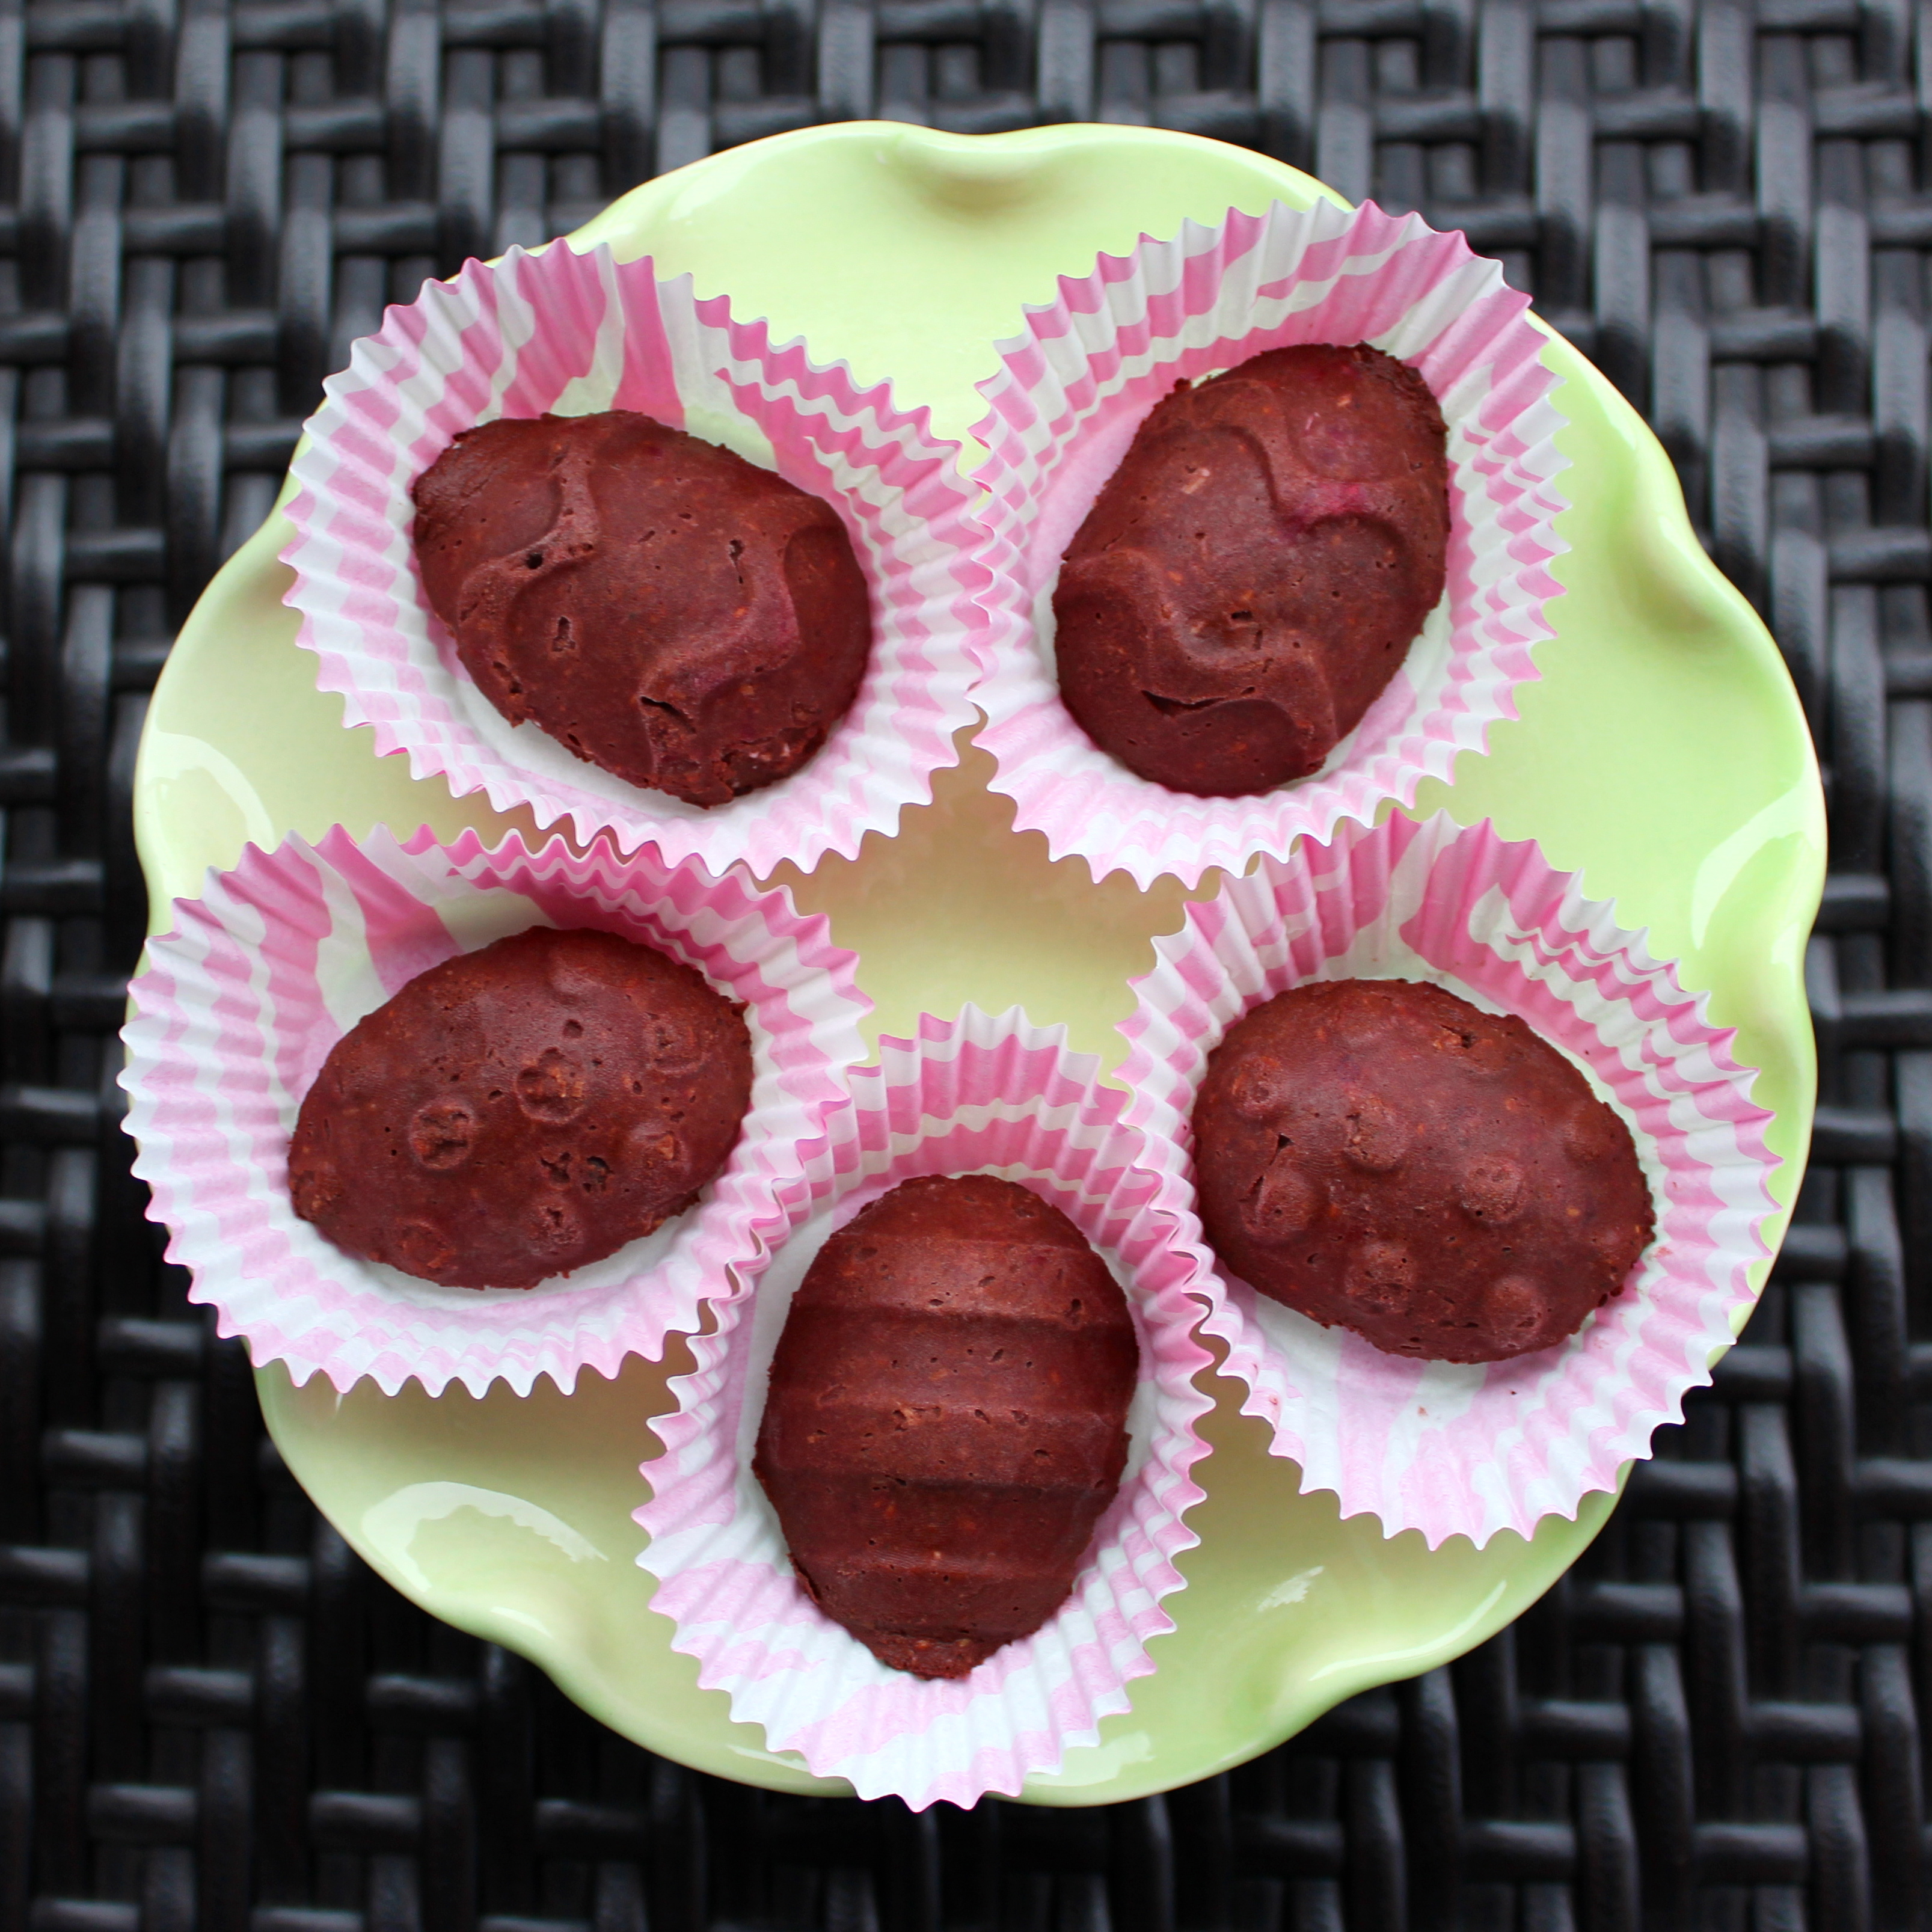 Raw Vegan Easter Egg Chocolate